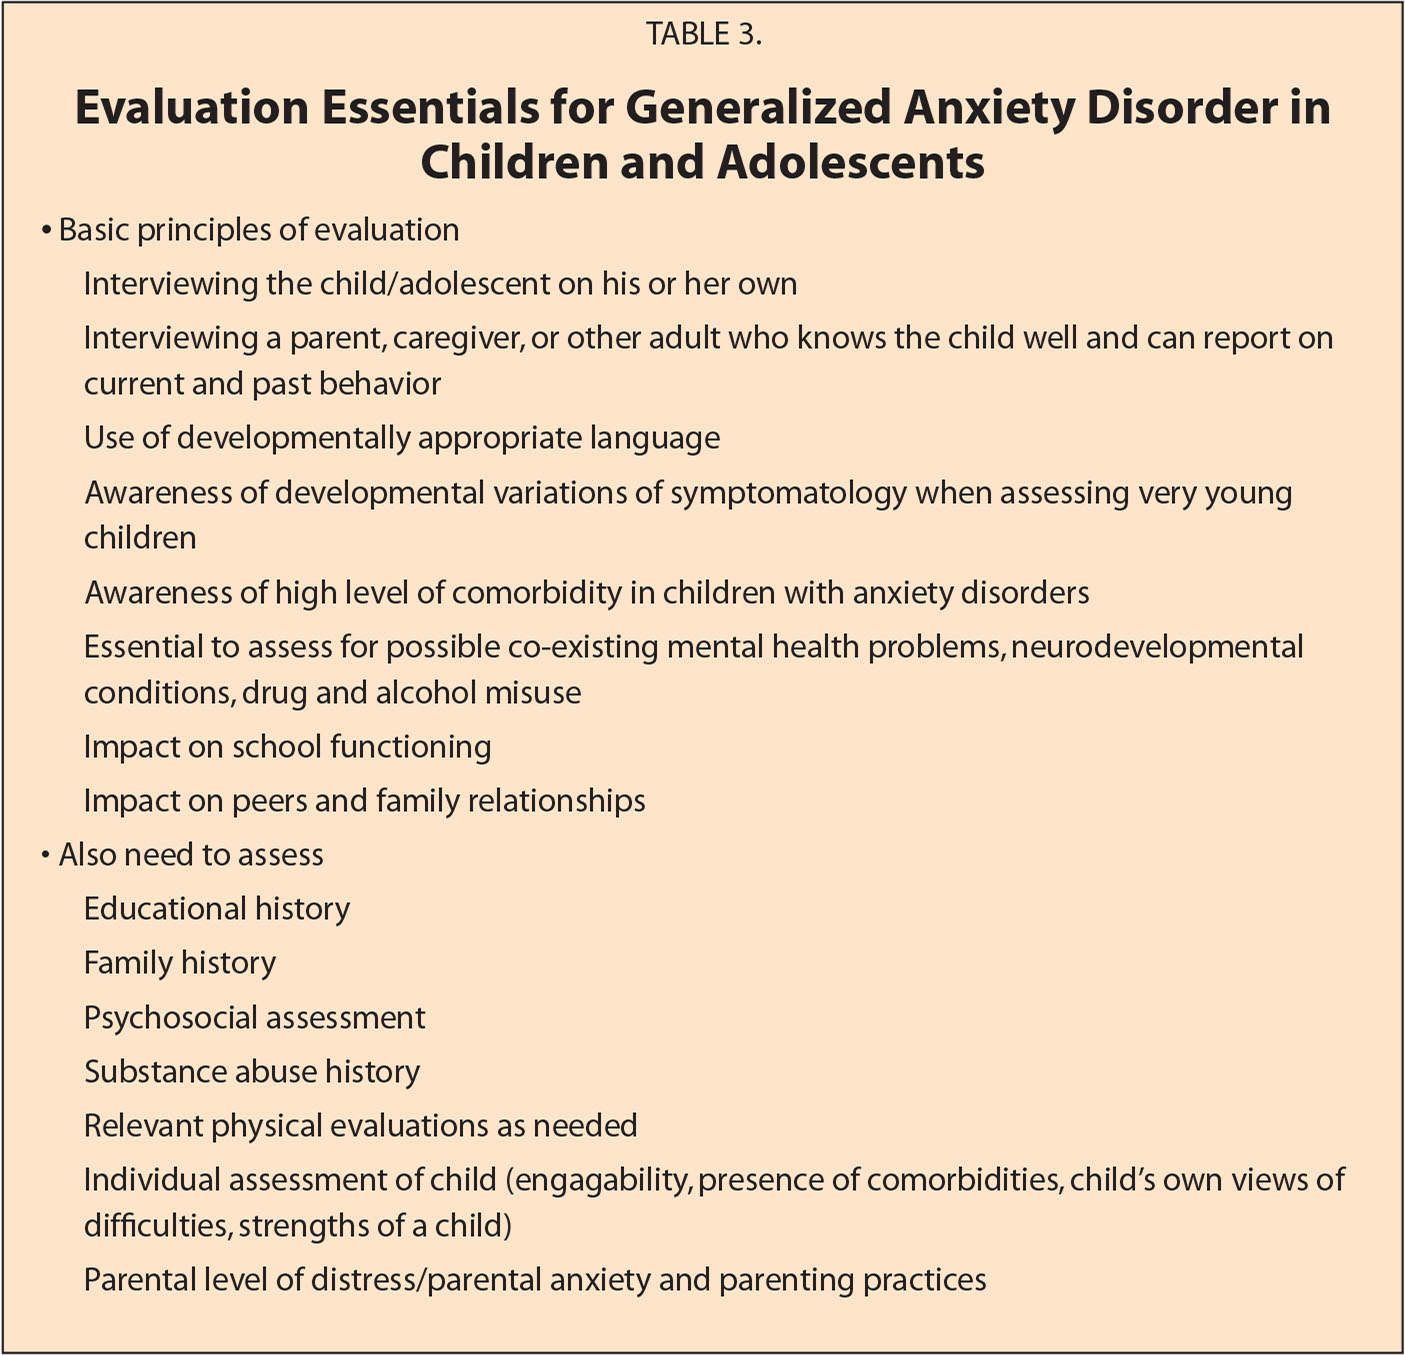 Evaluation Essentials for Generalized Anxiety Disorder in Children and Adolescents